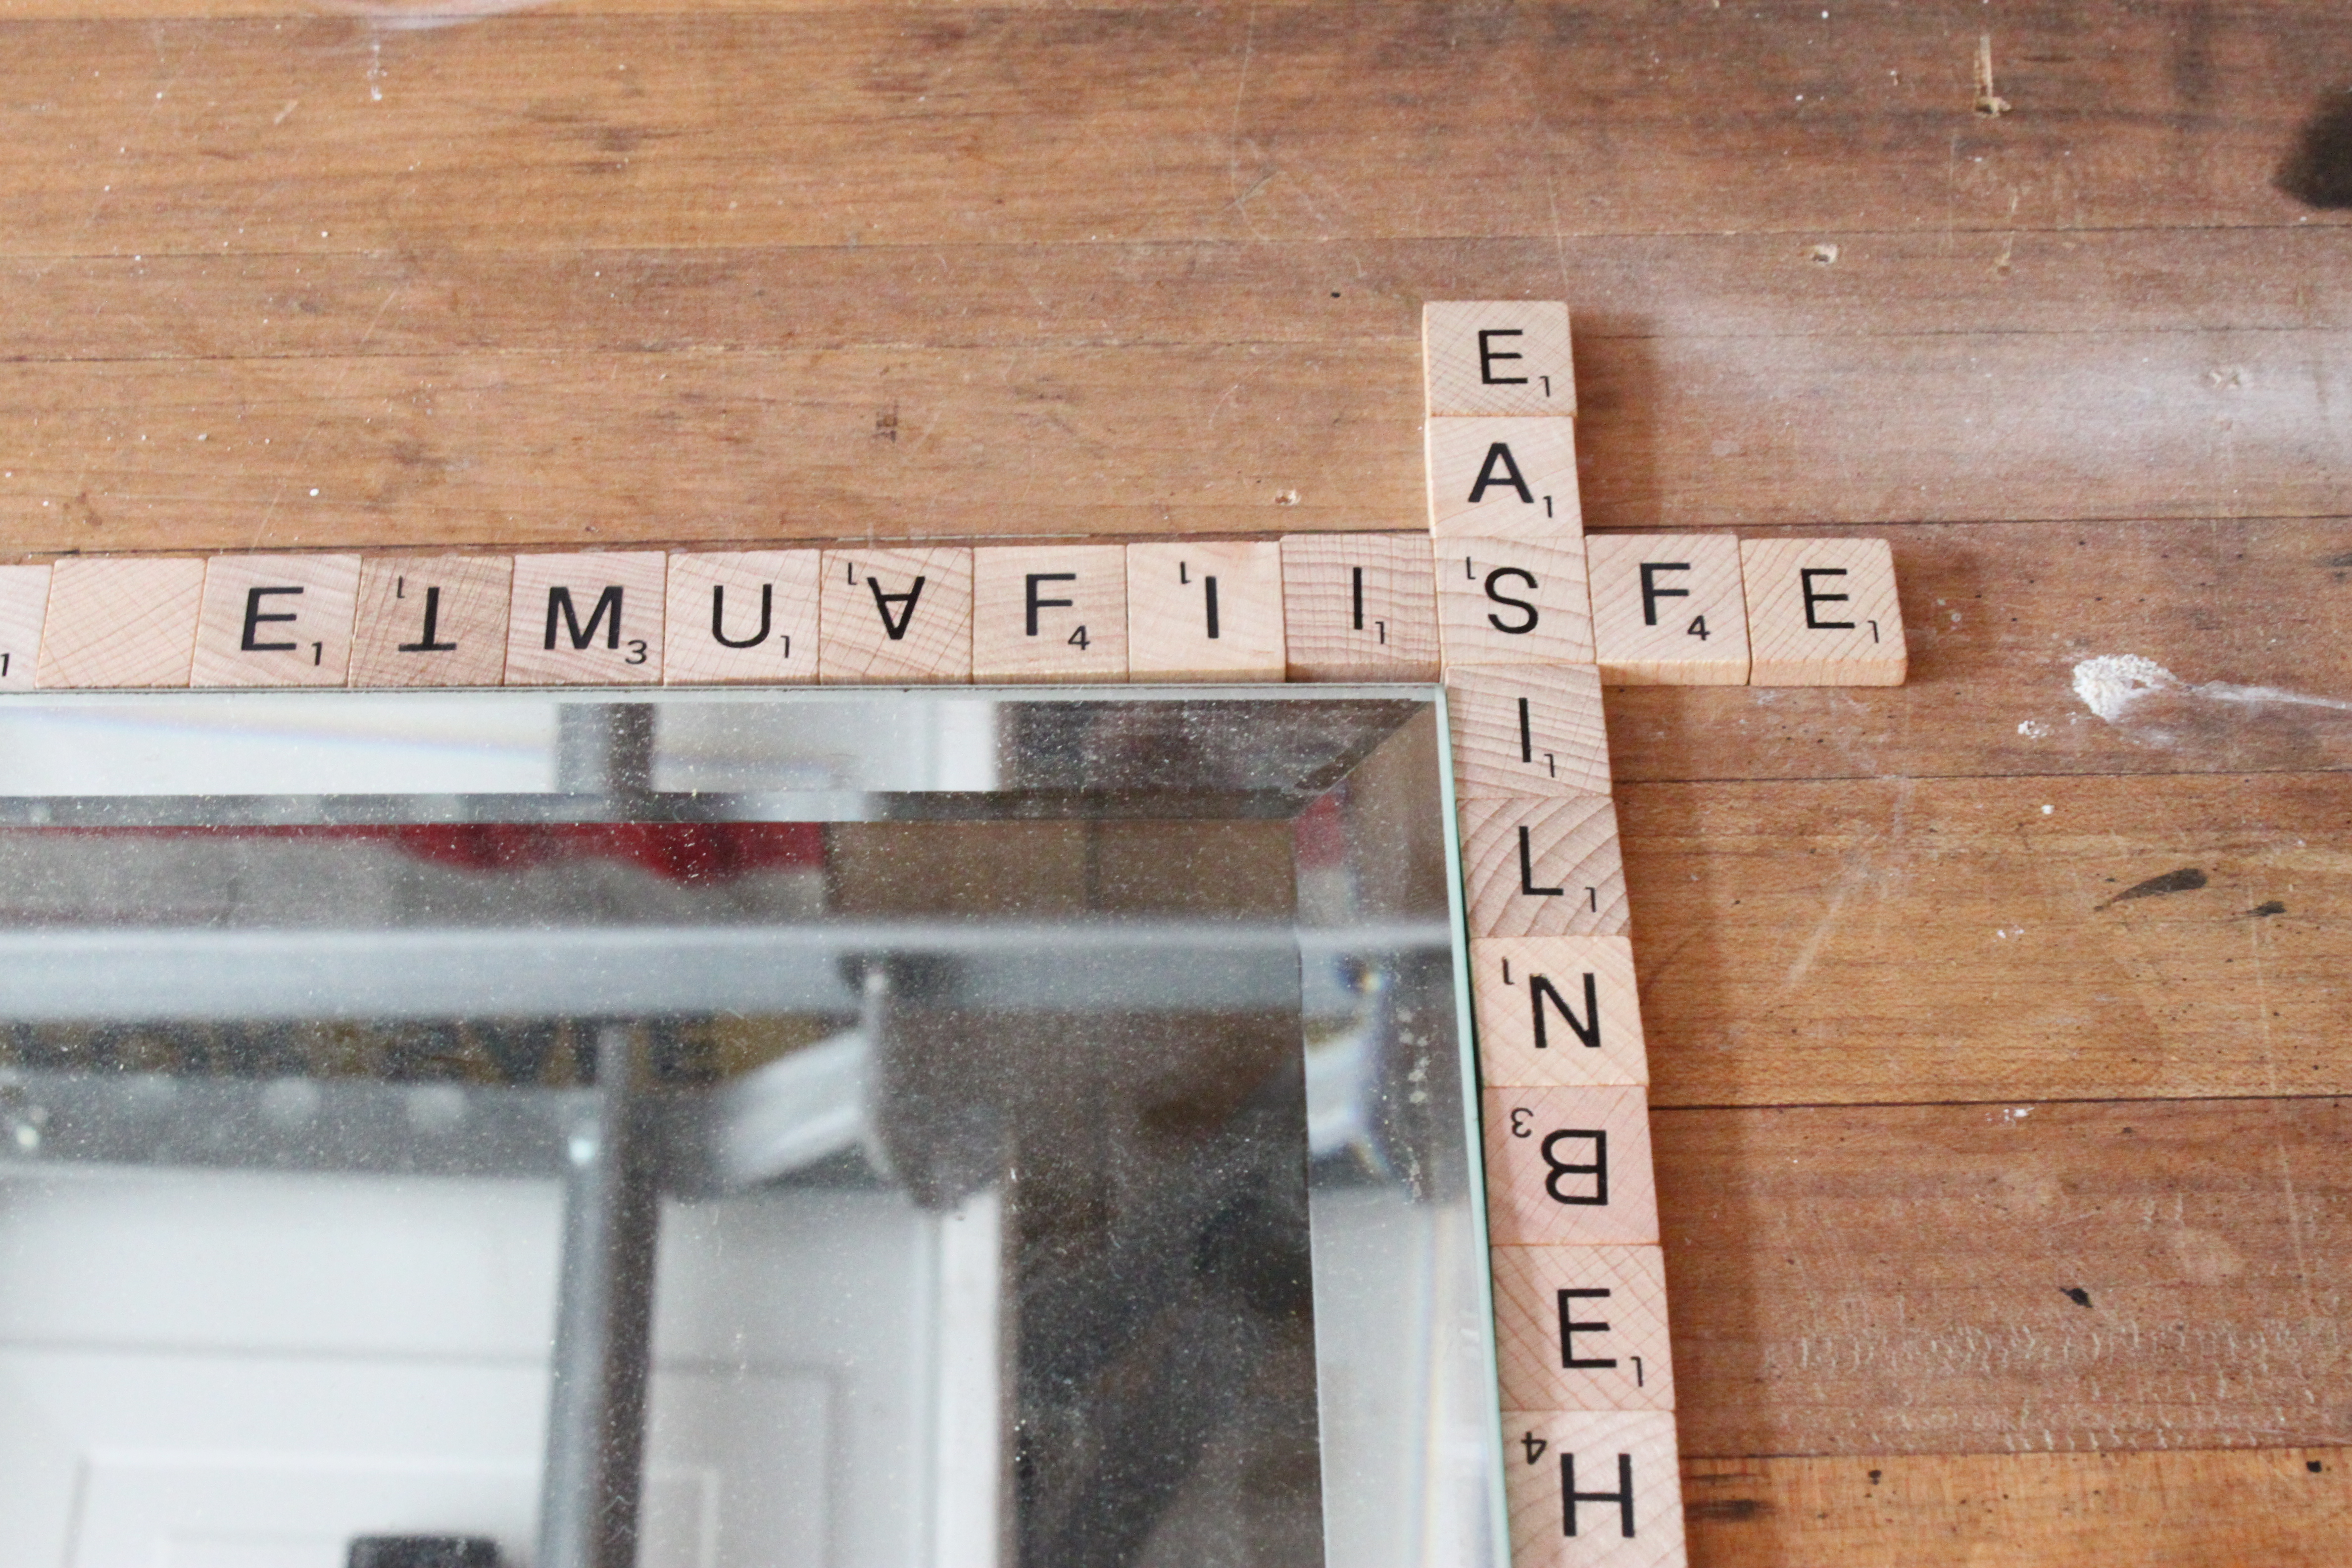 i line up the scrabble tiles around the edge of my mirror